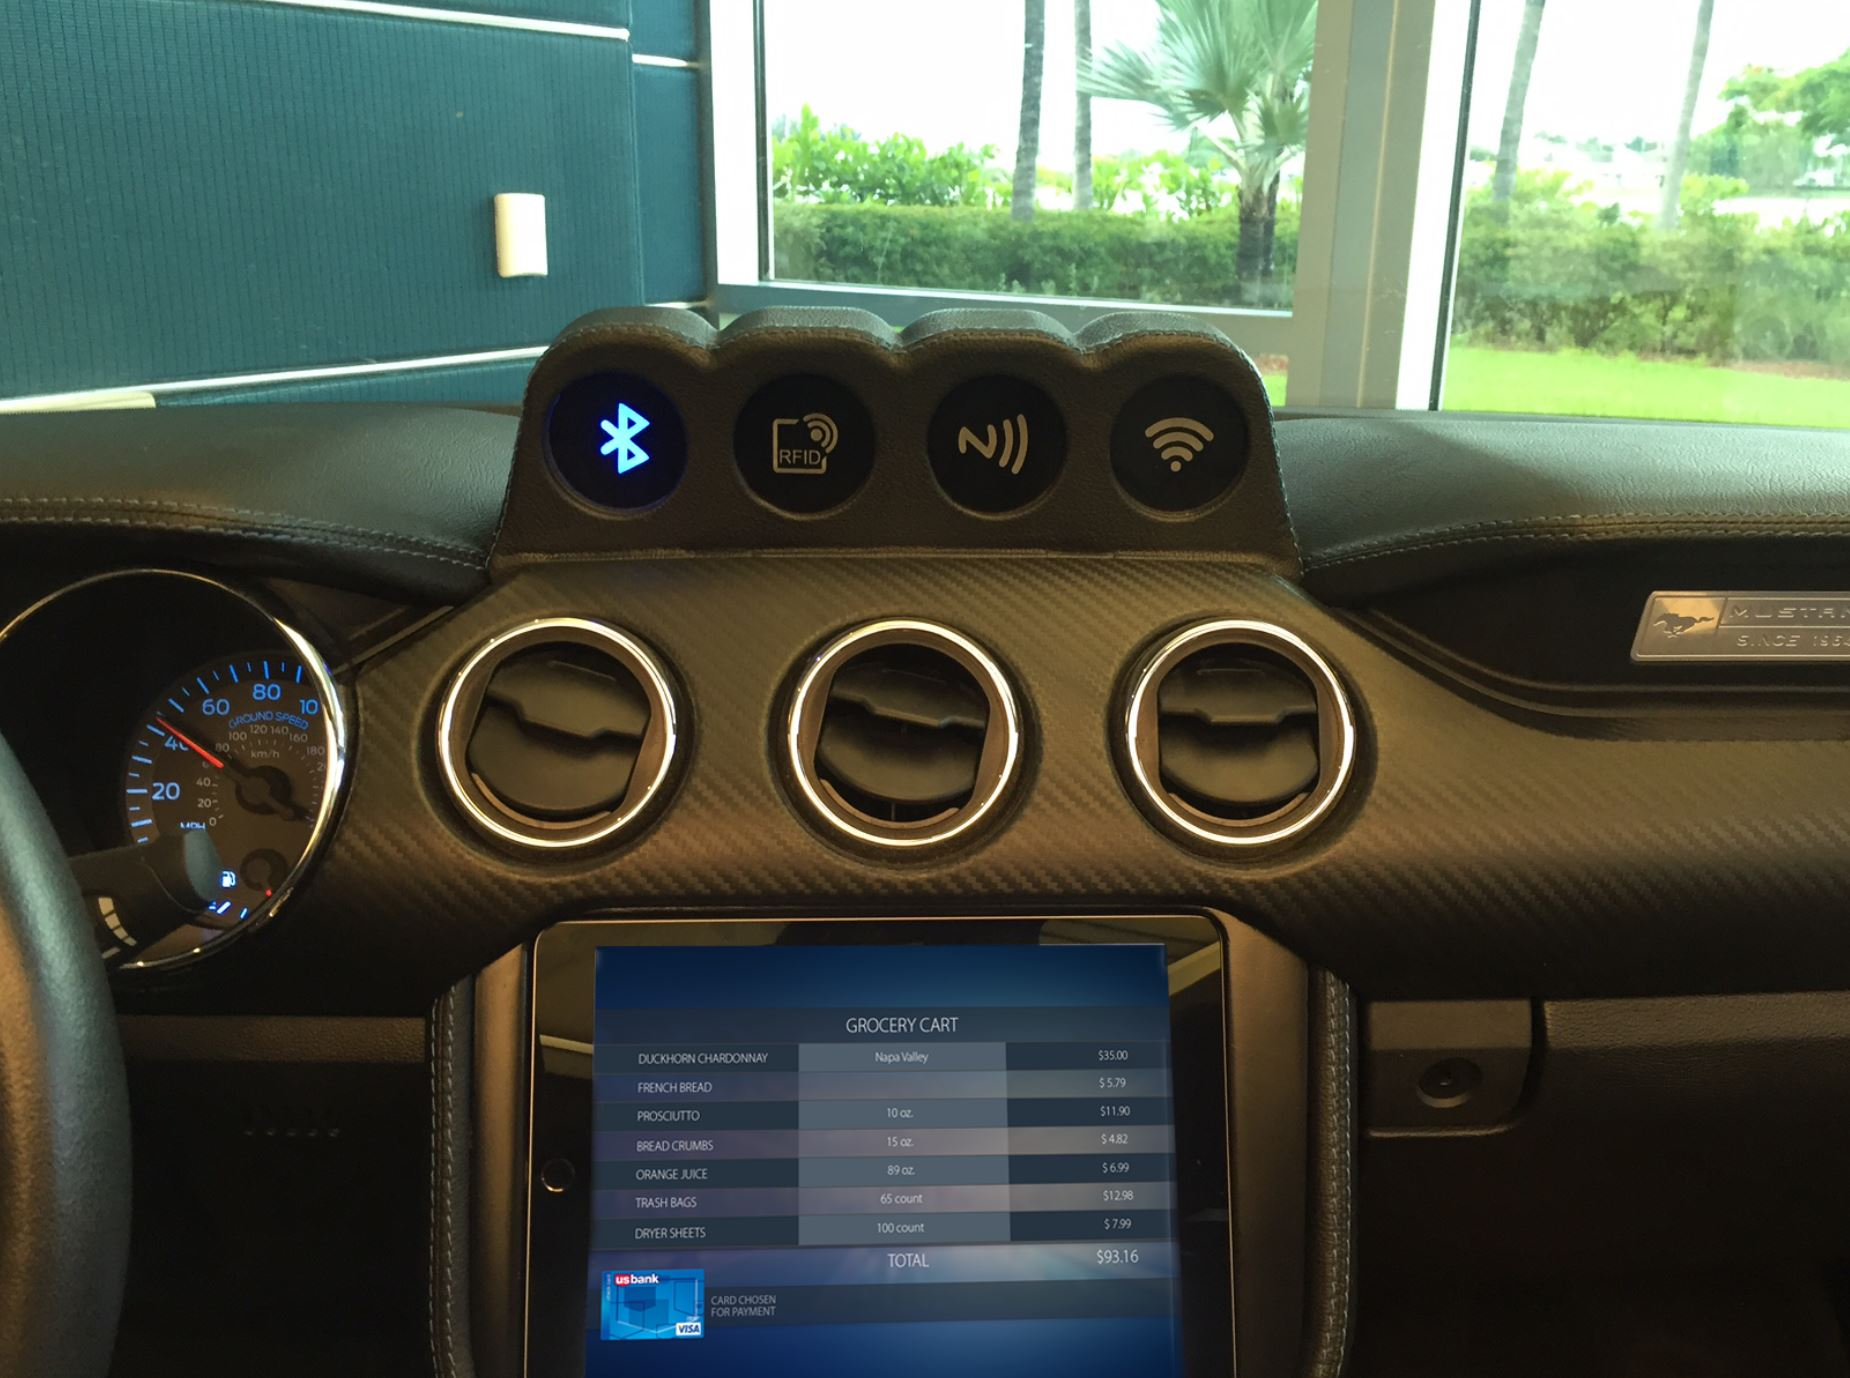 Our connected experiments demonstrate in-car cockpit commerce that allow vehicles to authenticate transactions through direct interaction with toll booths, parking meters, restaurants, etc.